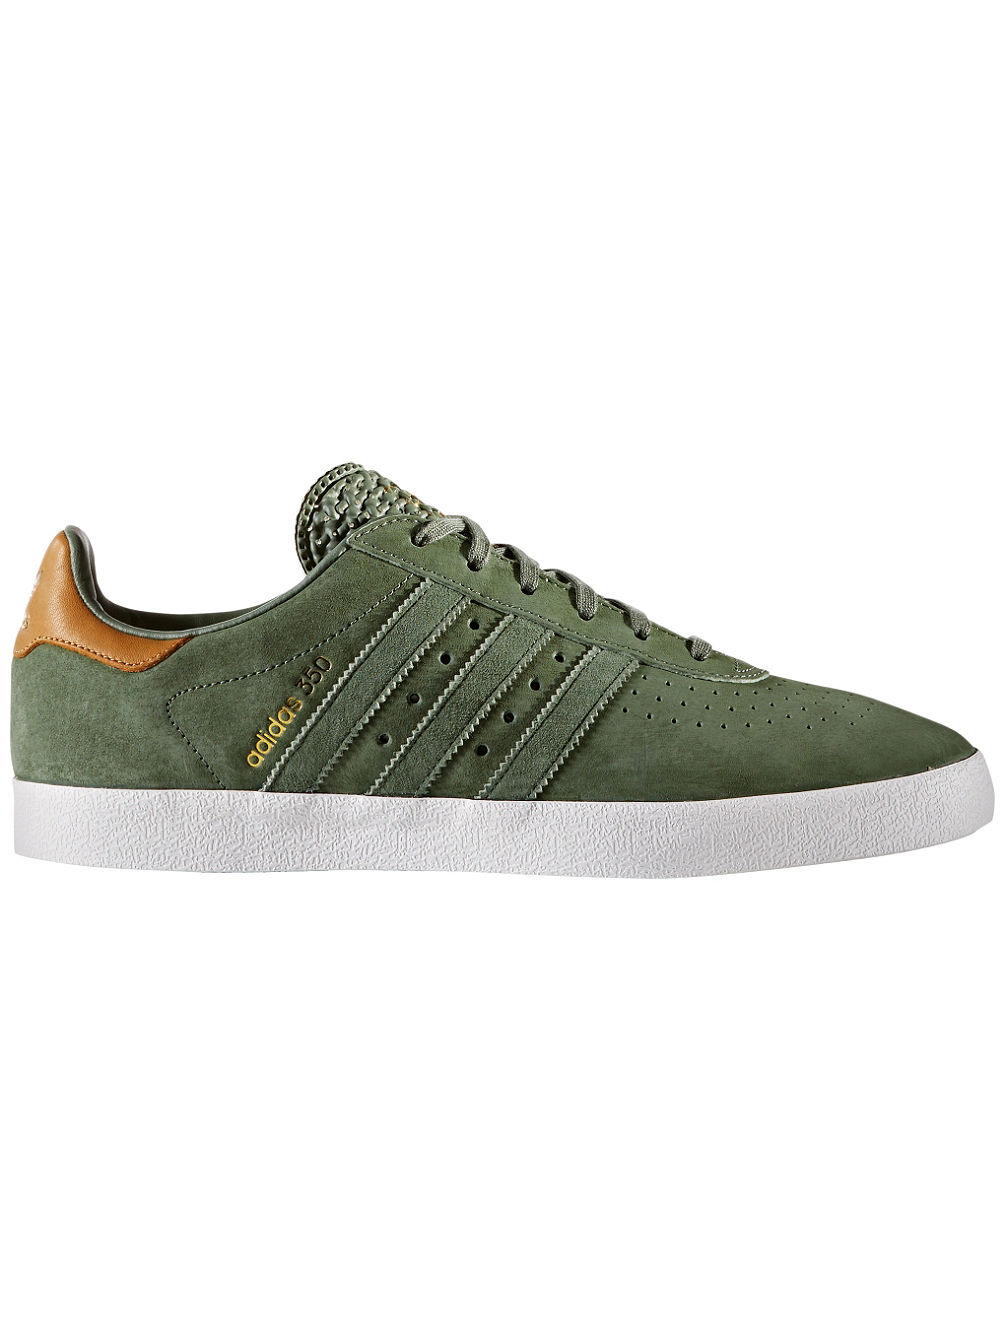 adidas-originals-adidas-350-sneakers-tracegreen